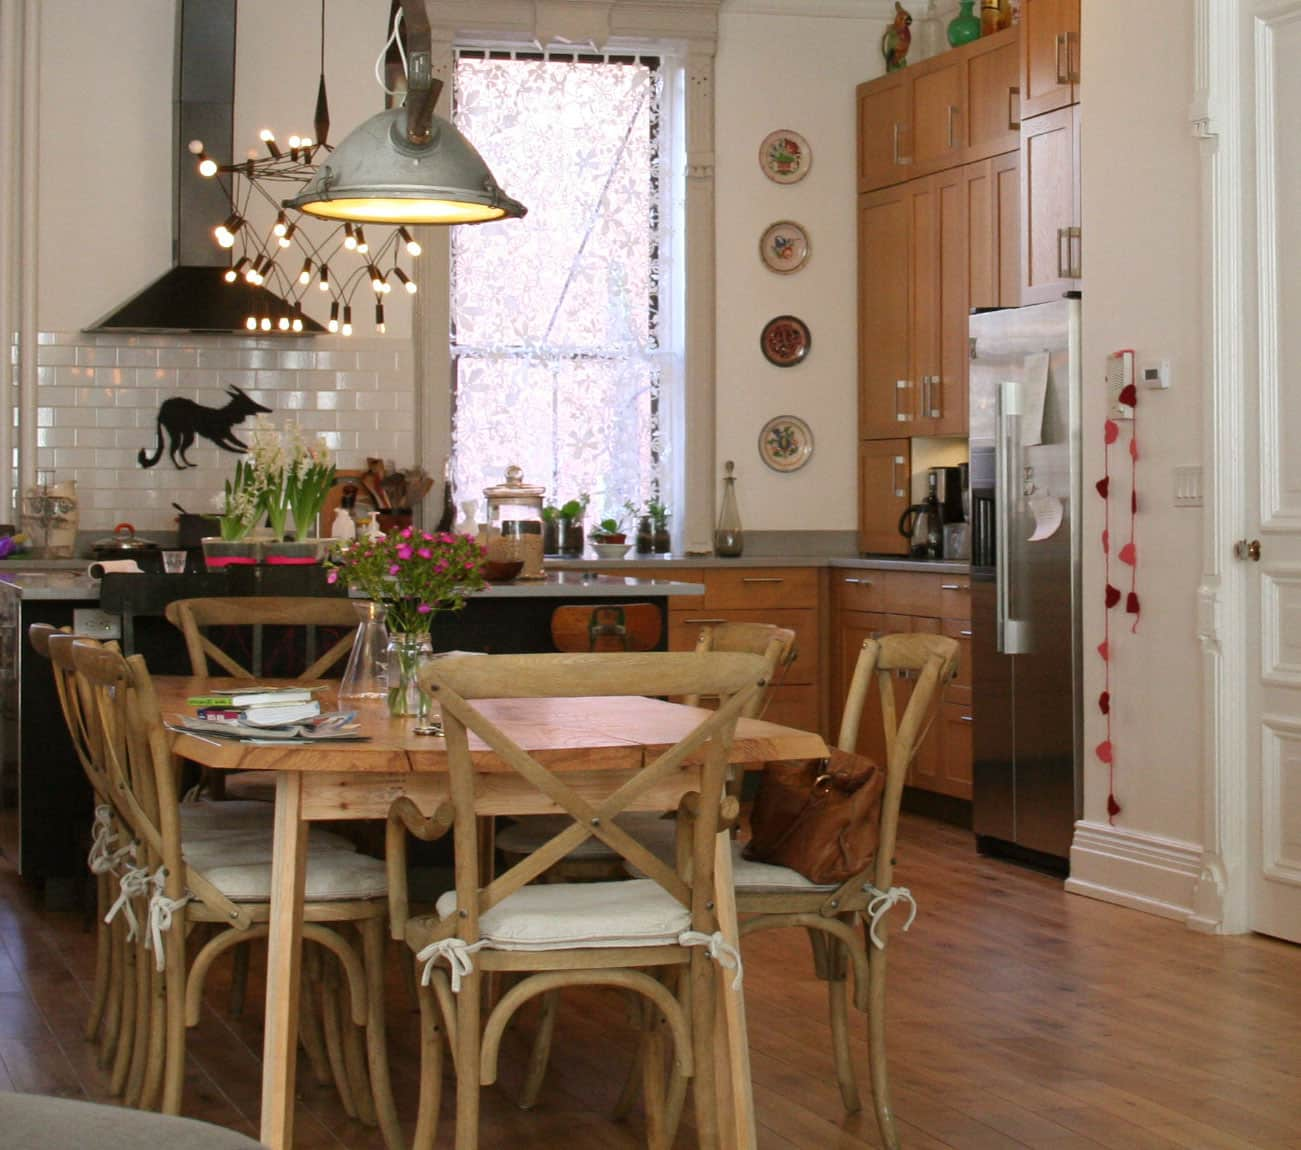 Sophie and Michael's Beautiful 'Discontinued' Oak Kitchen: gallery image 1